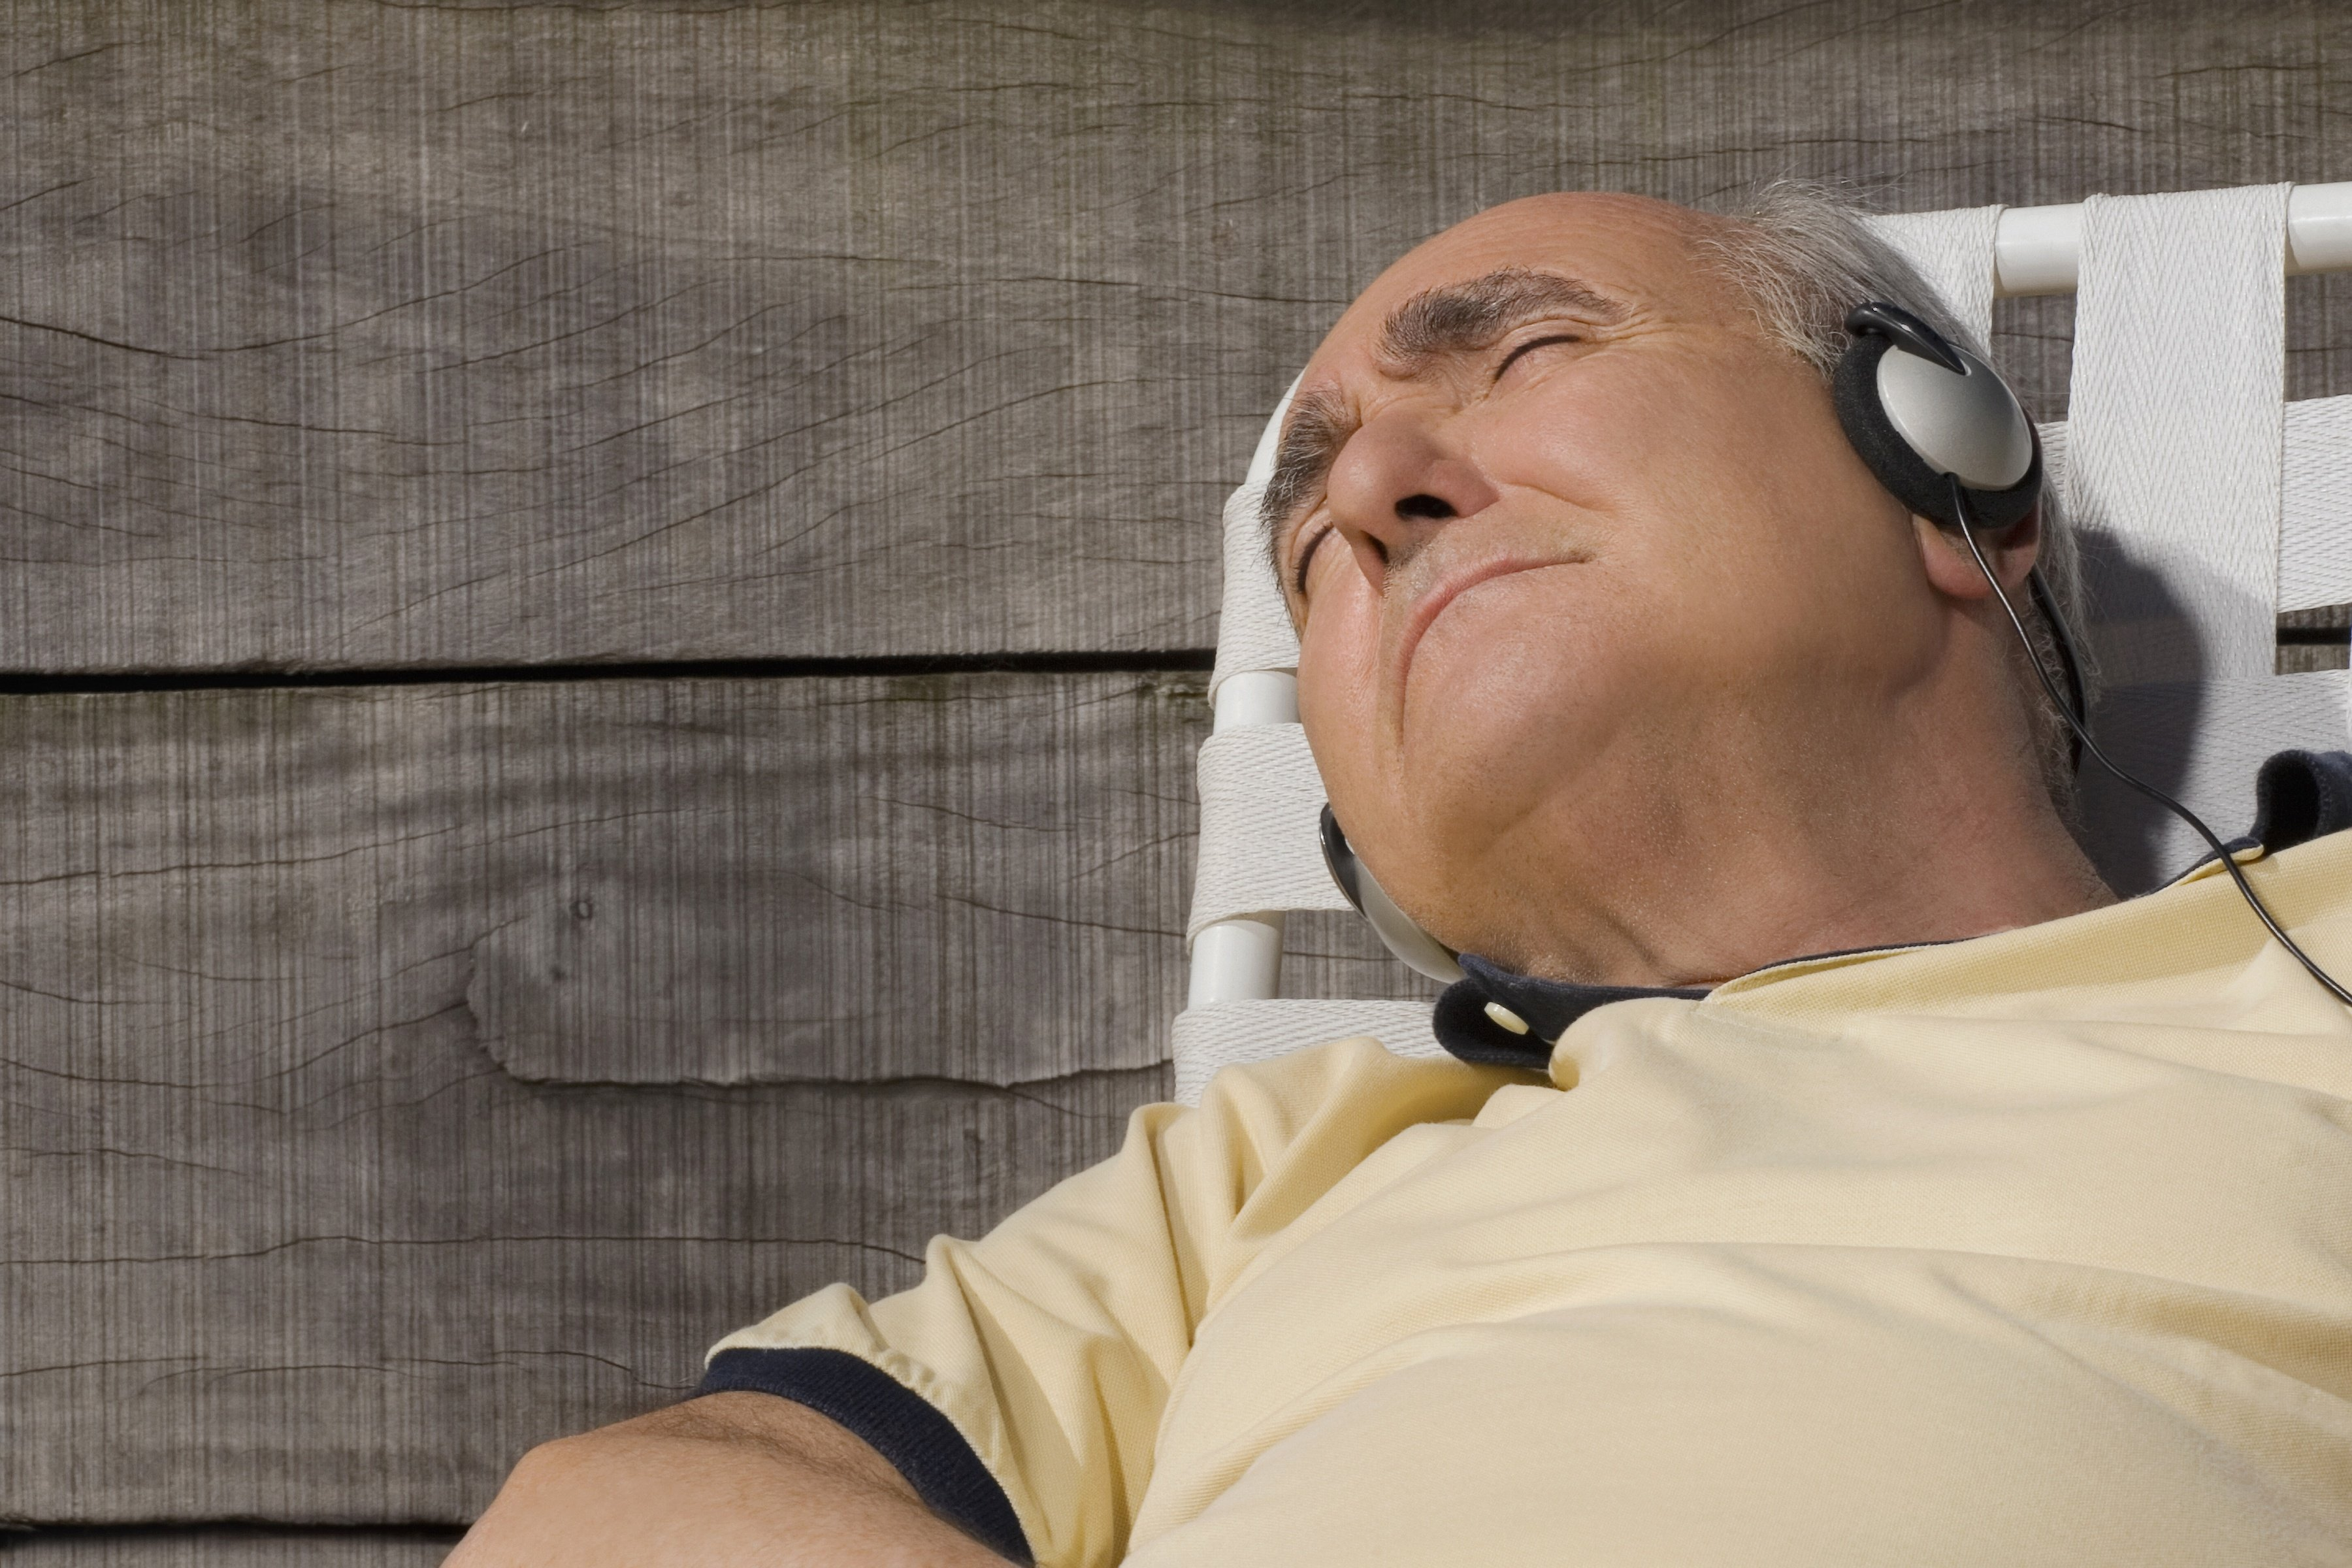 Personalized_Music_May_Benefit_Seniors_with_Dementia.jpg